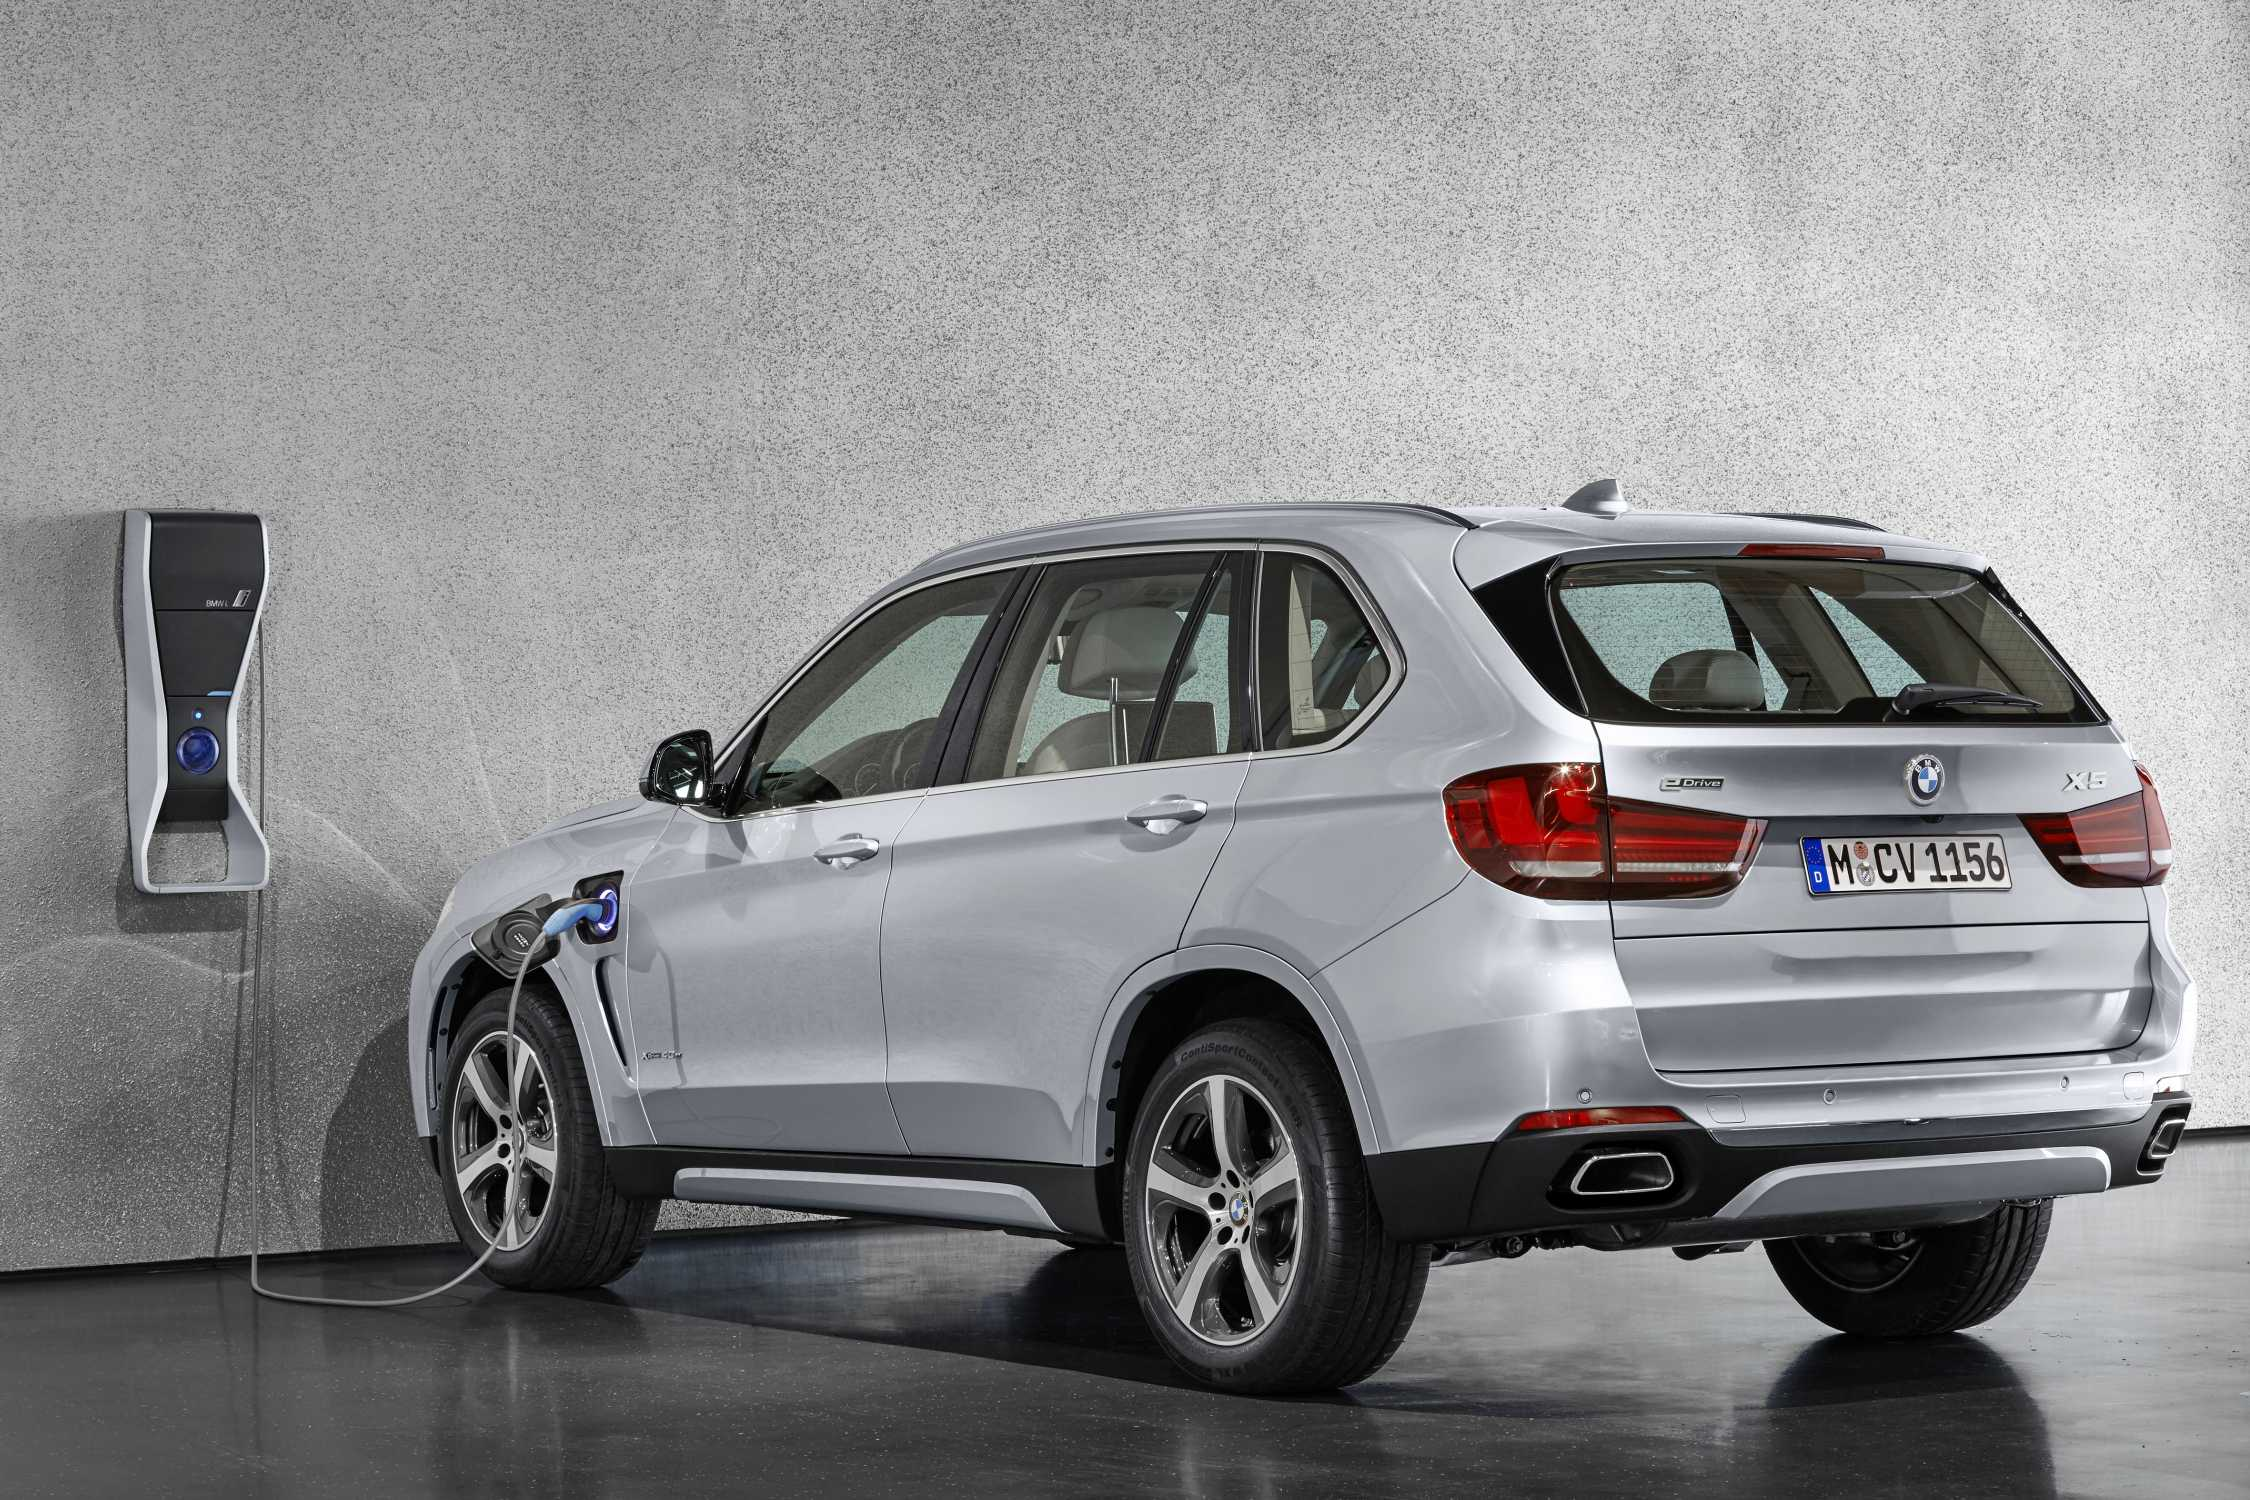 the new bmw x5 xdrive40e with bmw i wallbox pure. Black Bedroom Furniture Sets. Home Design Ideas